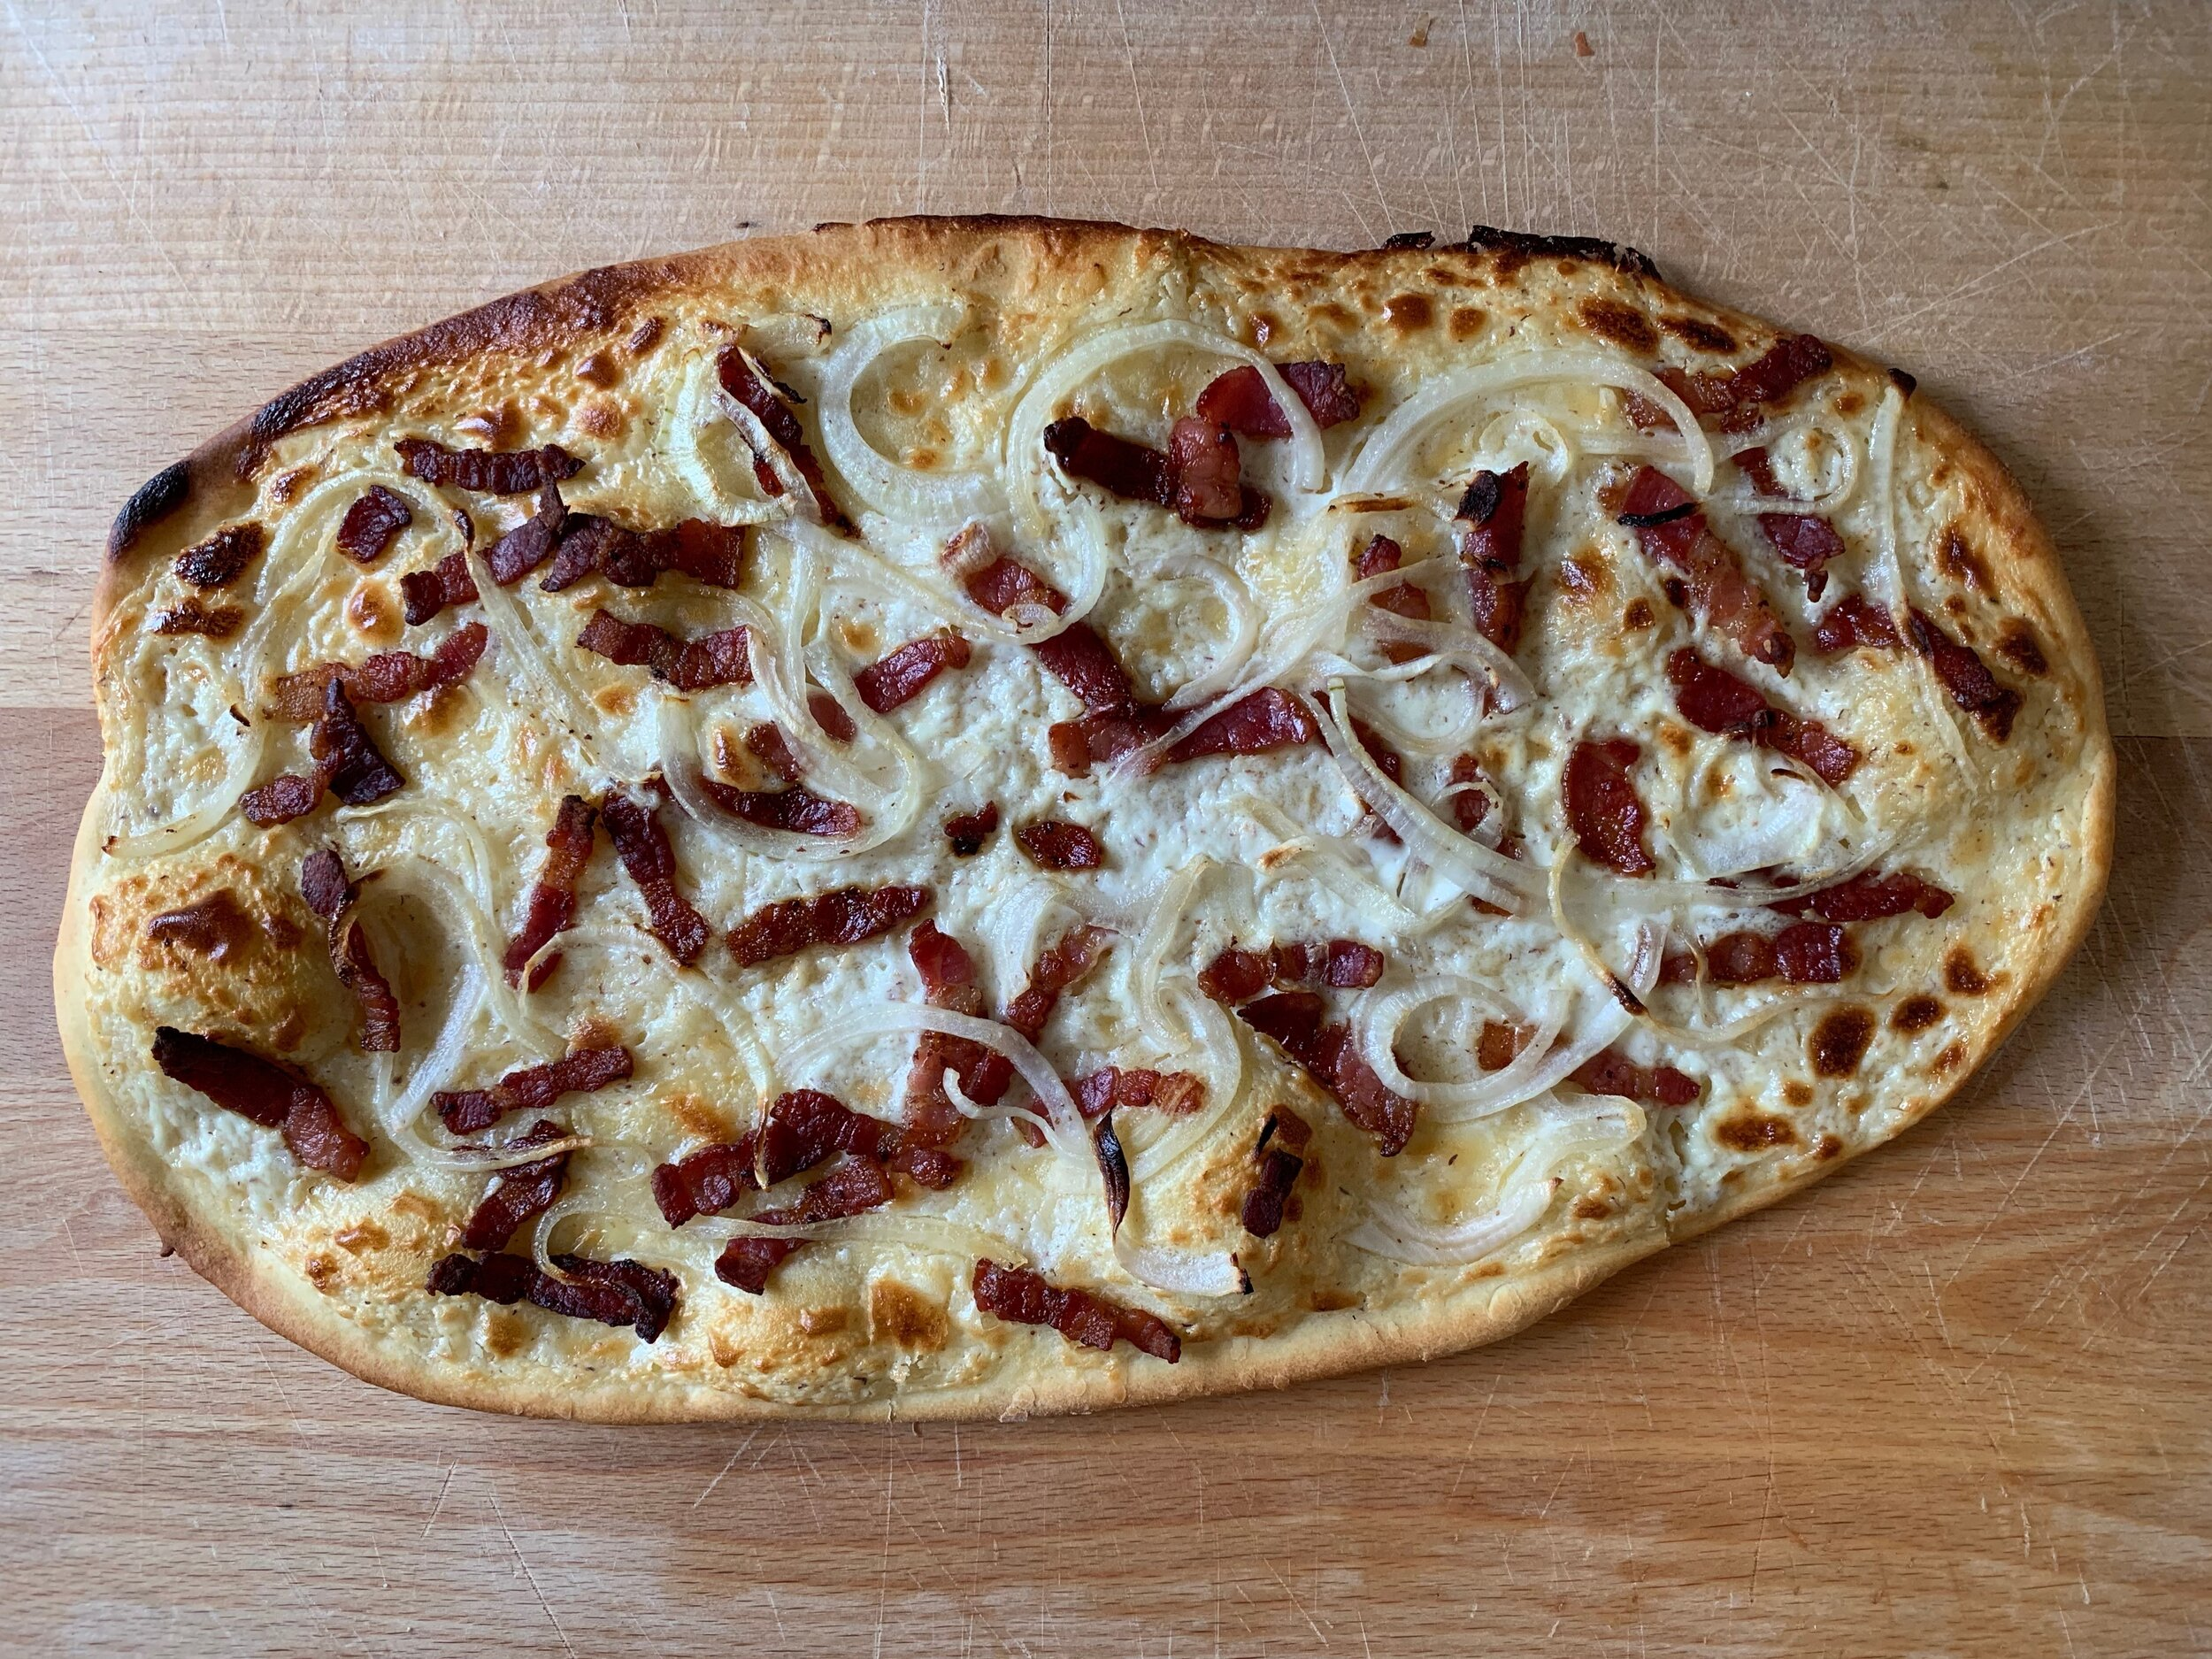 Finished tarte flambée. All that's missing is a glass of riesling!